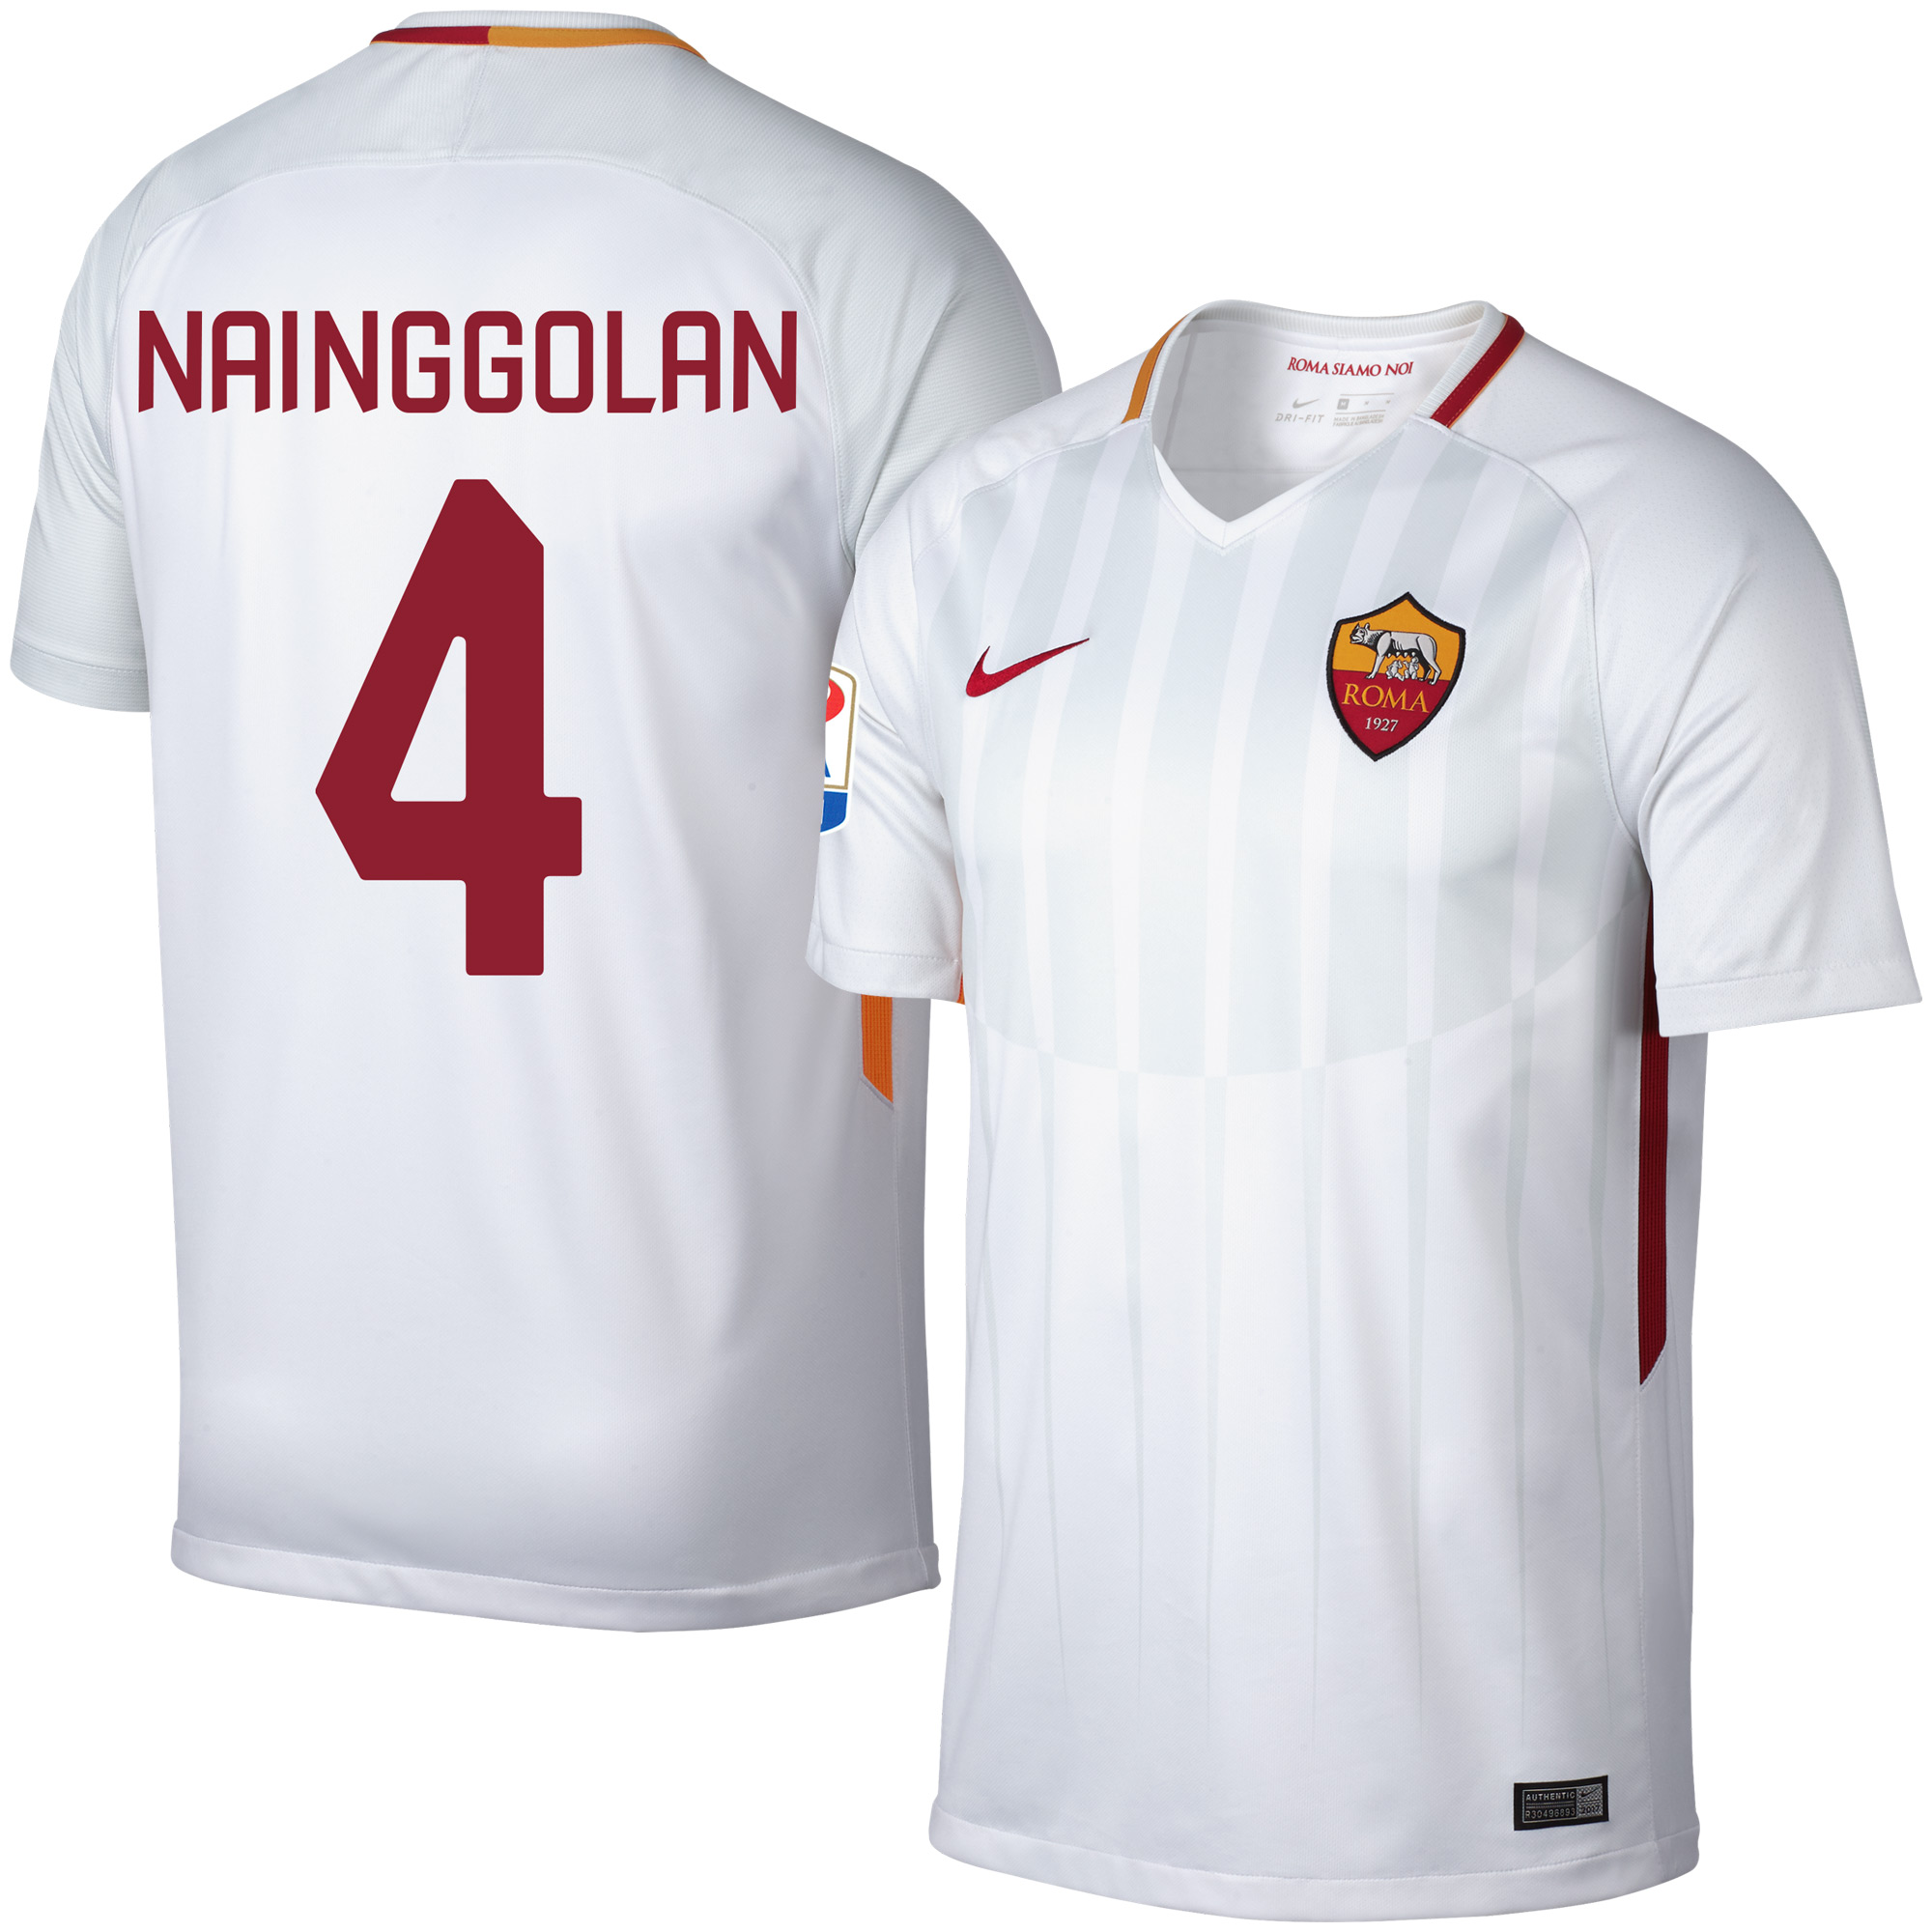 AS Roma Away Nainggolan Jersey 2017 / 2018 (Fan Style Printing) - L